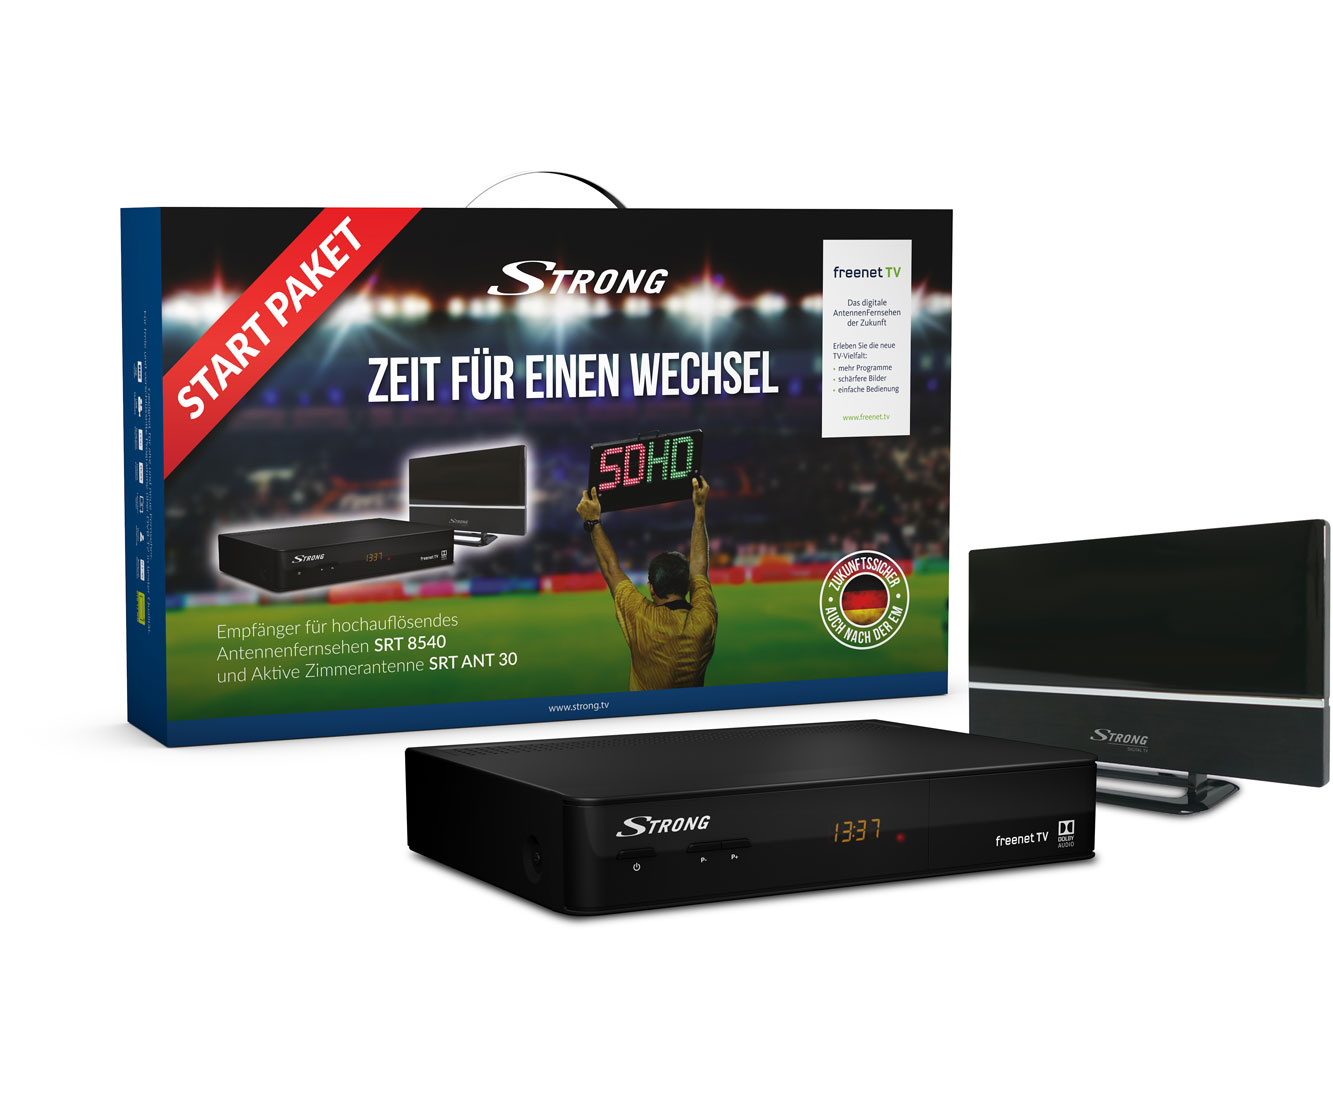 Strong START-Paket Freenet TV Receiver - Schwarz